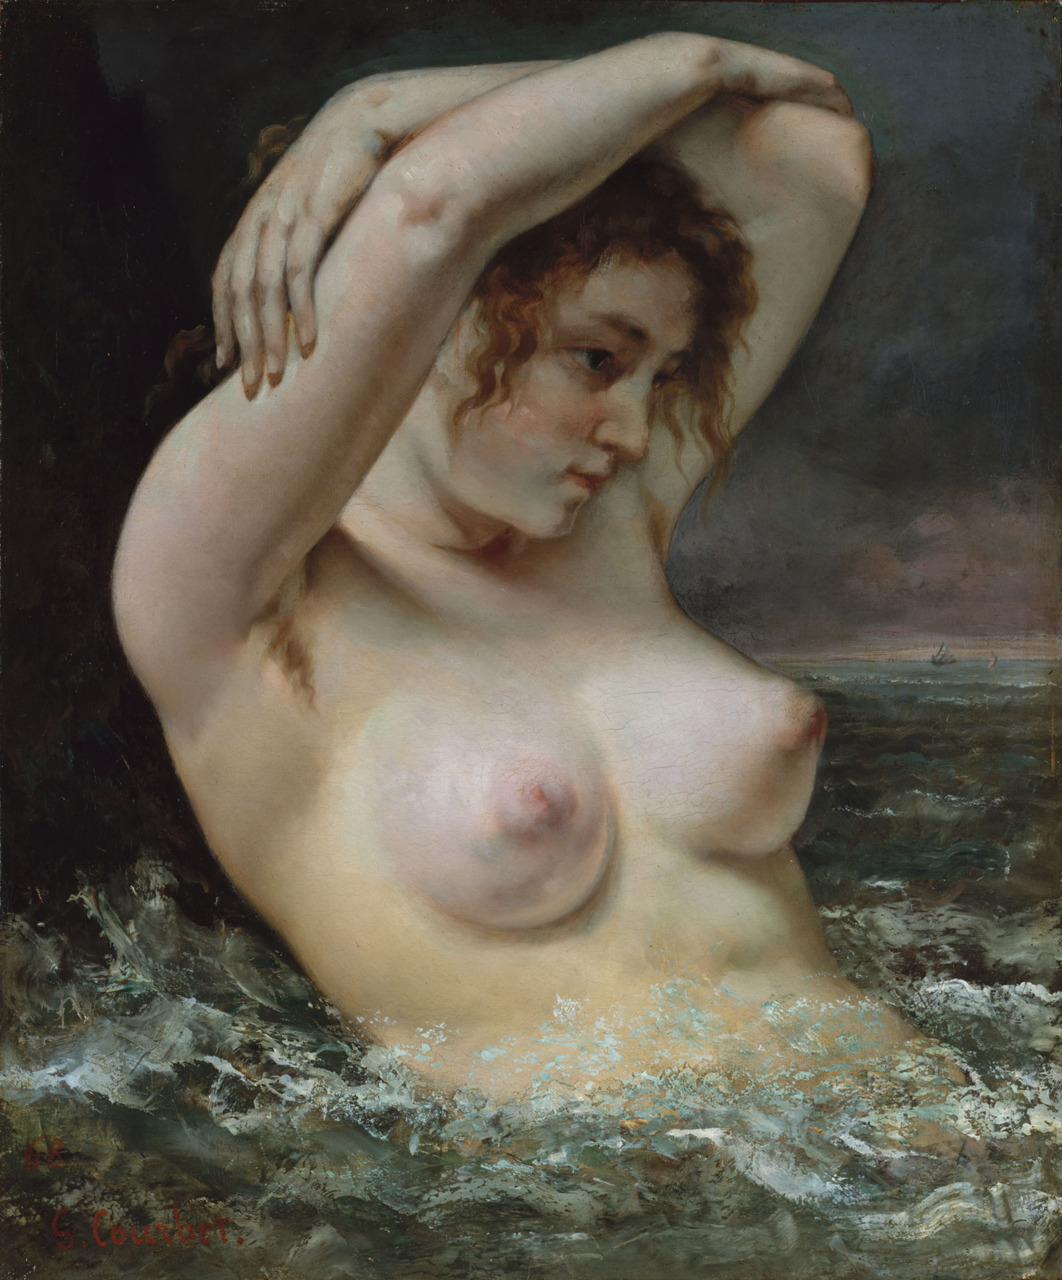 msbehavoyeur:  The Woman in the Waves (La Femme dans les vagues), oil on canvas panting  of 1868 by the French Realist painter Gustave Courbet (1819-1877), 65  cm x 54 cm, Metropolitan Museum of Art, New York City, United States. via